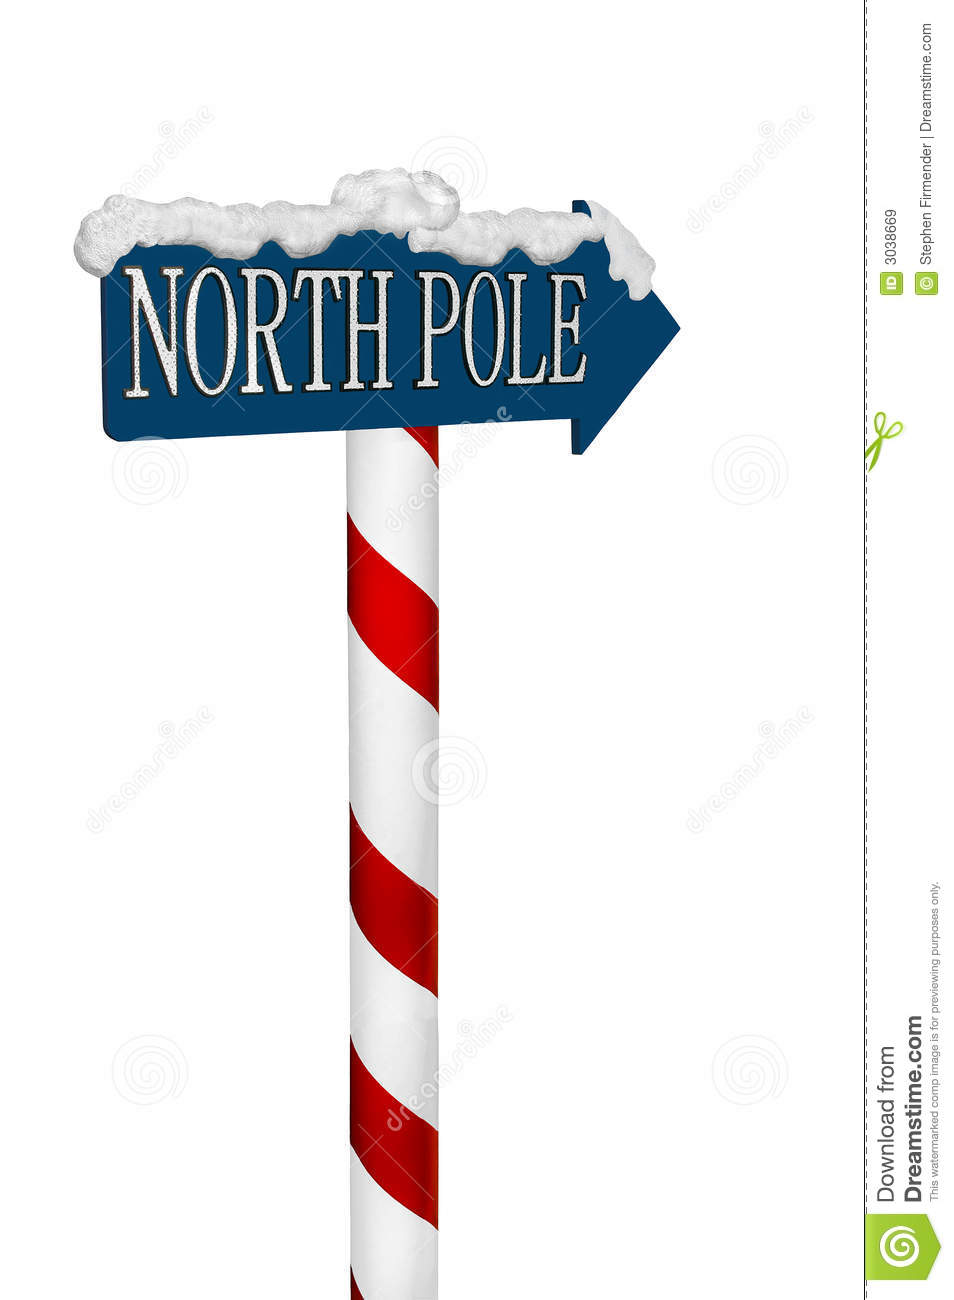 north pole sign stock image image of winter santa road 3038669 rh dreamstime com north pole sign clipart free north pole sign clipart free